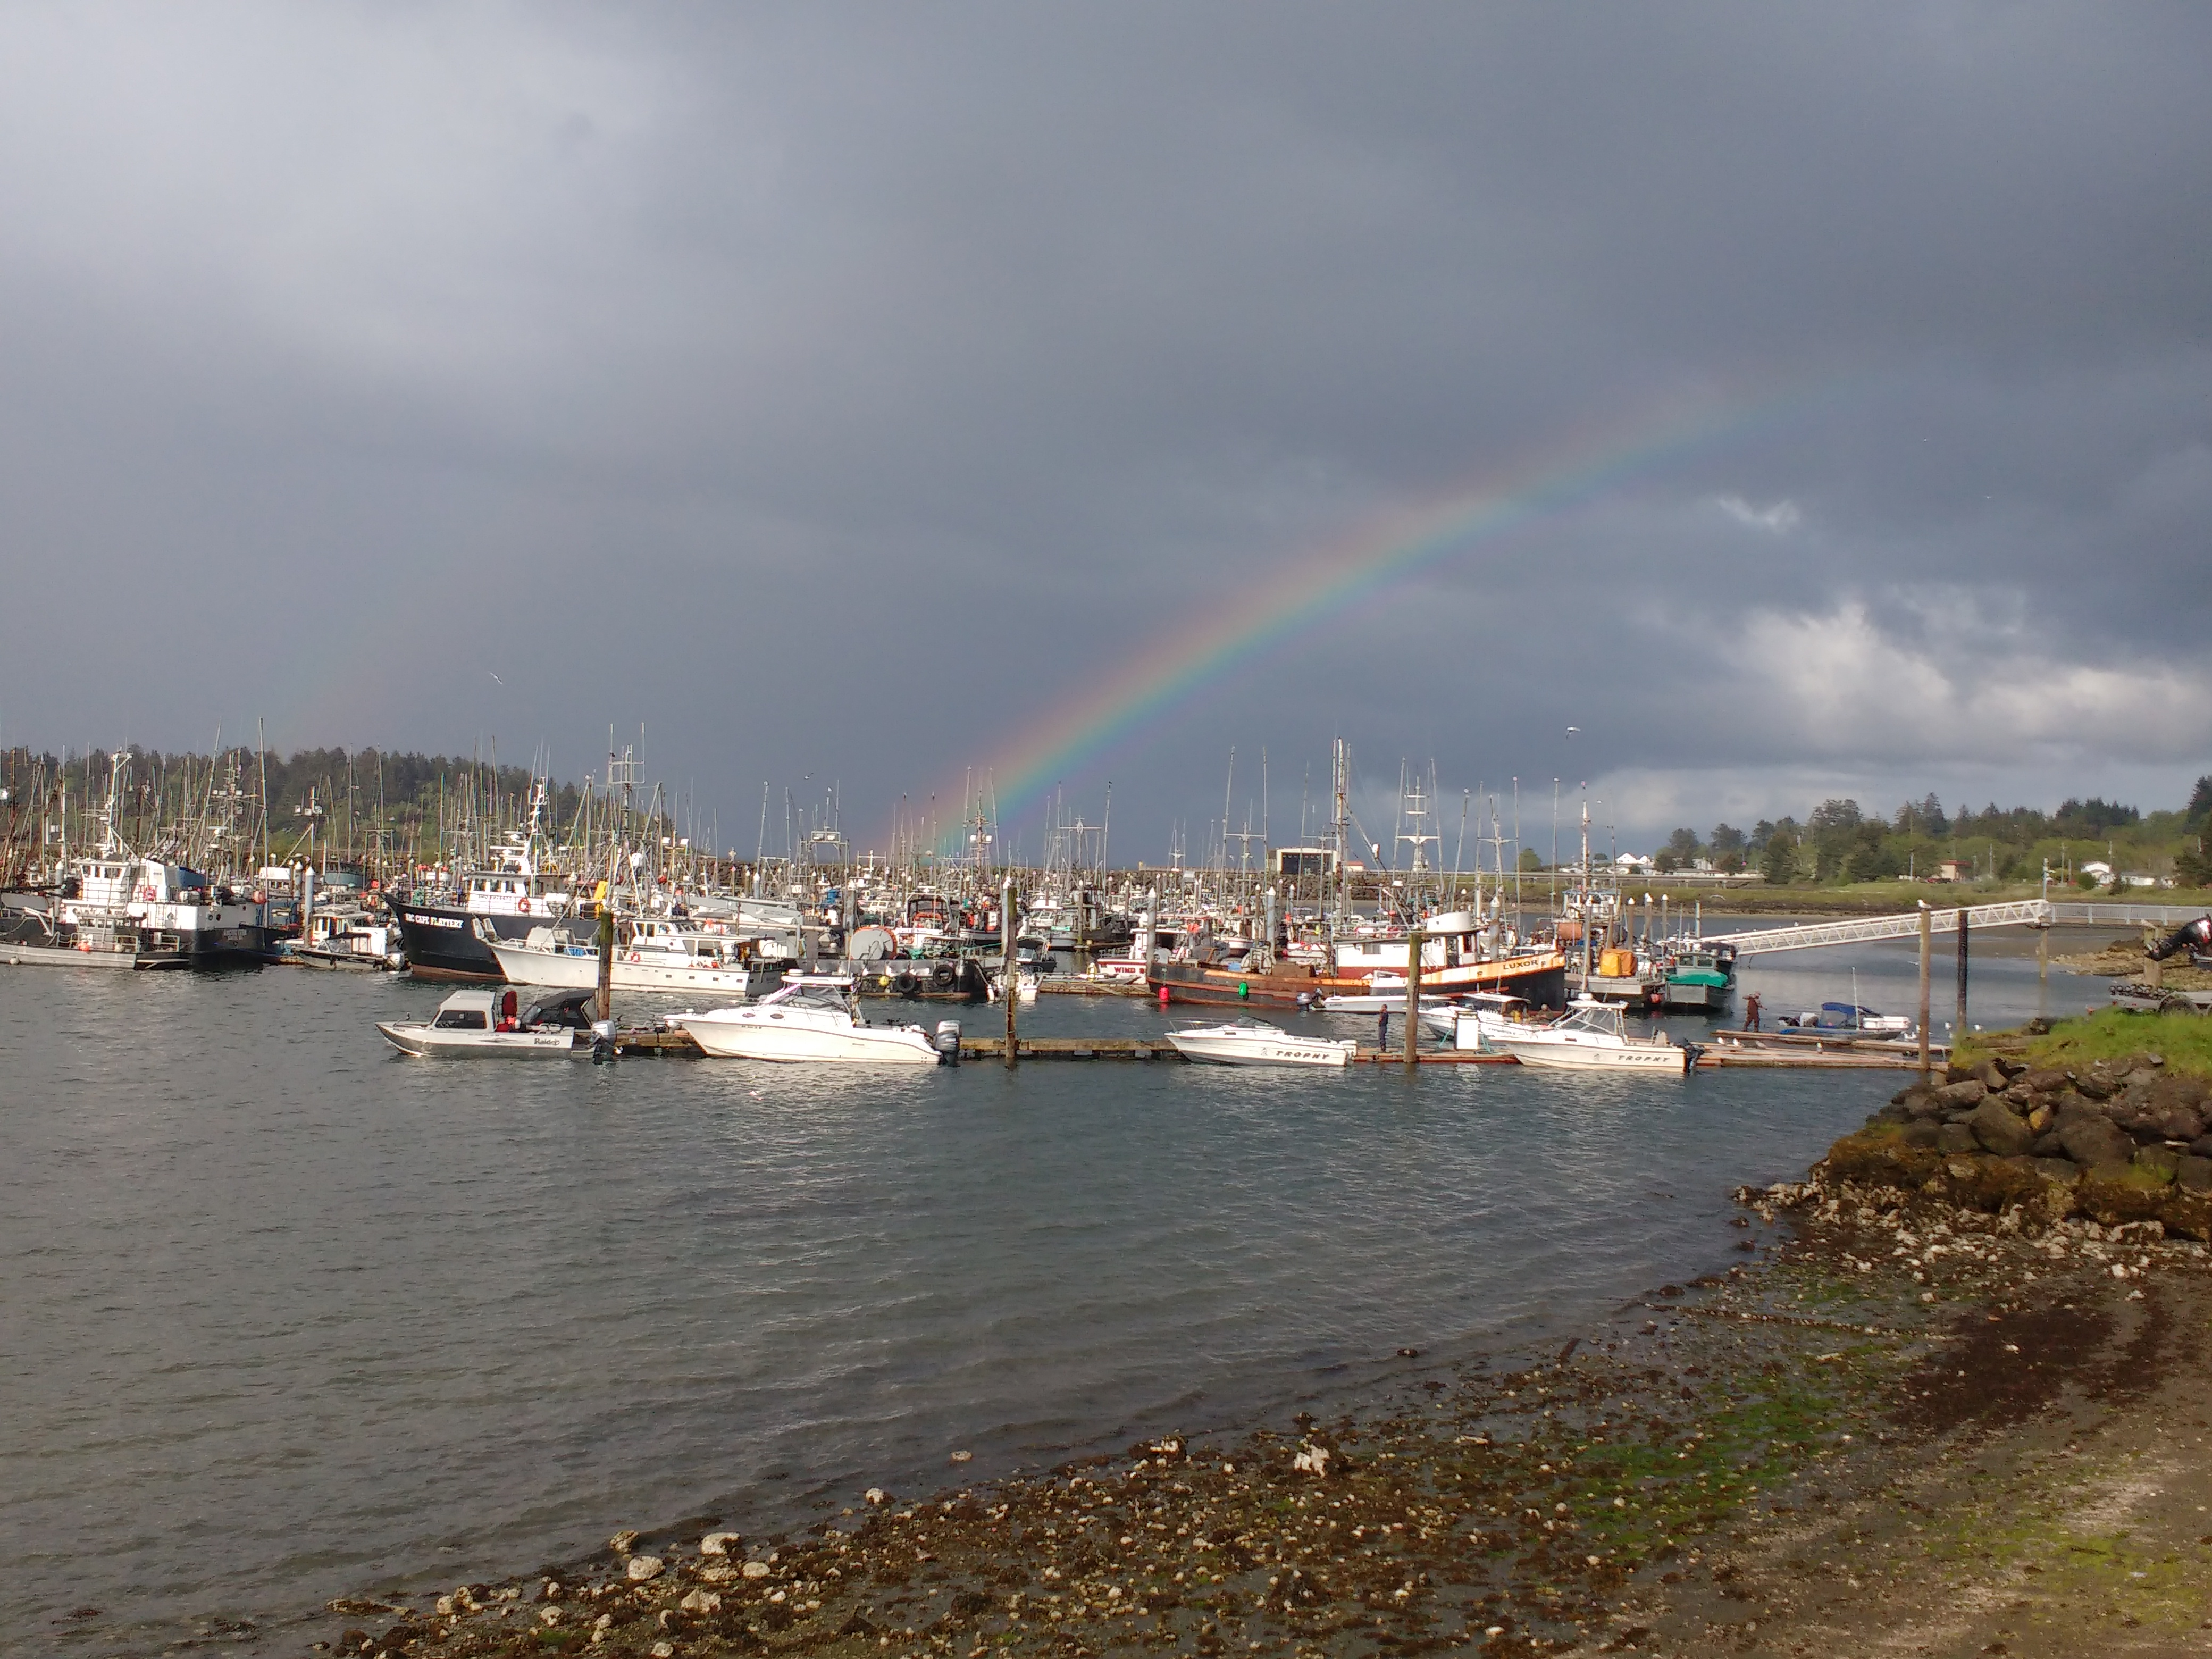 Rainbow over Neah Bay Marina. Photo Ray Penson